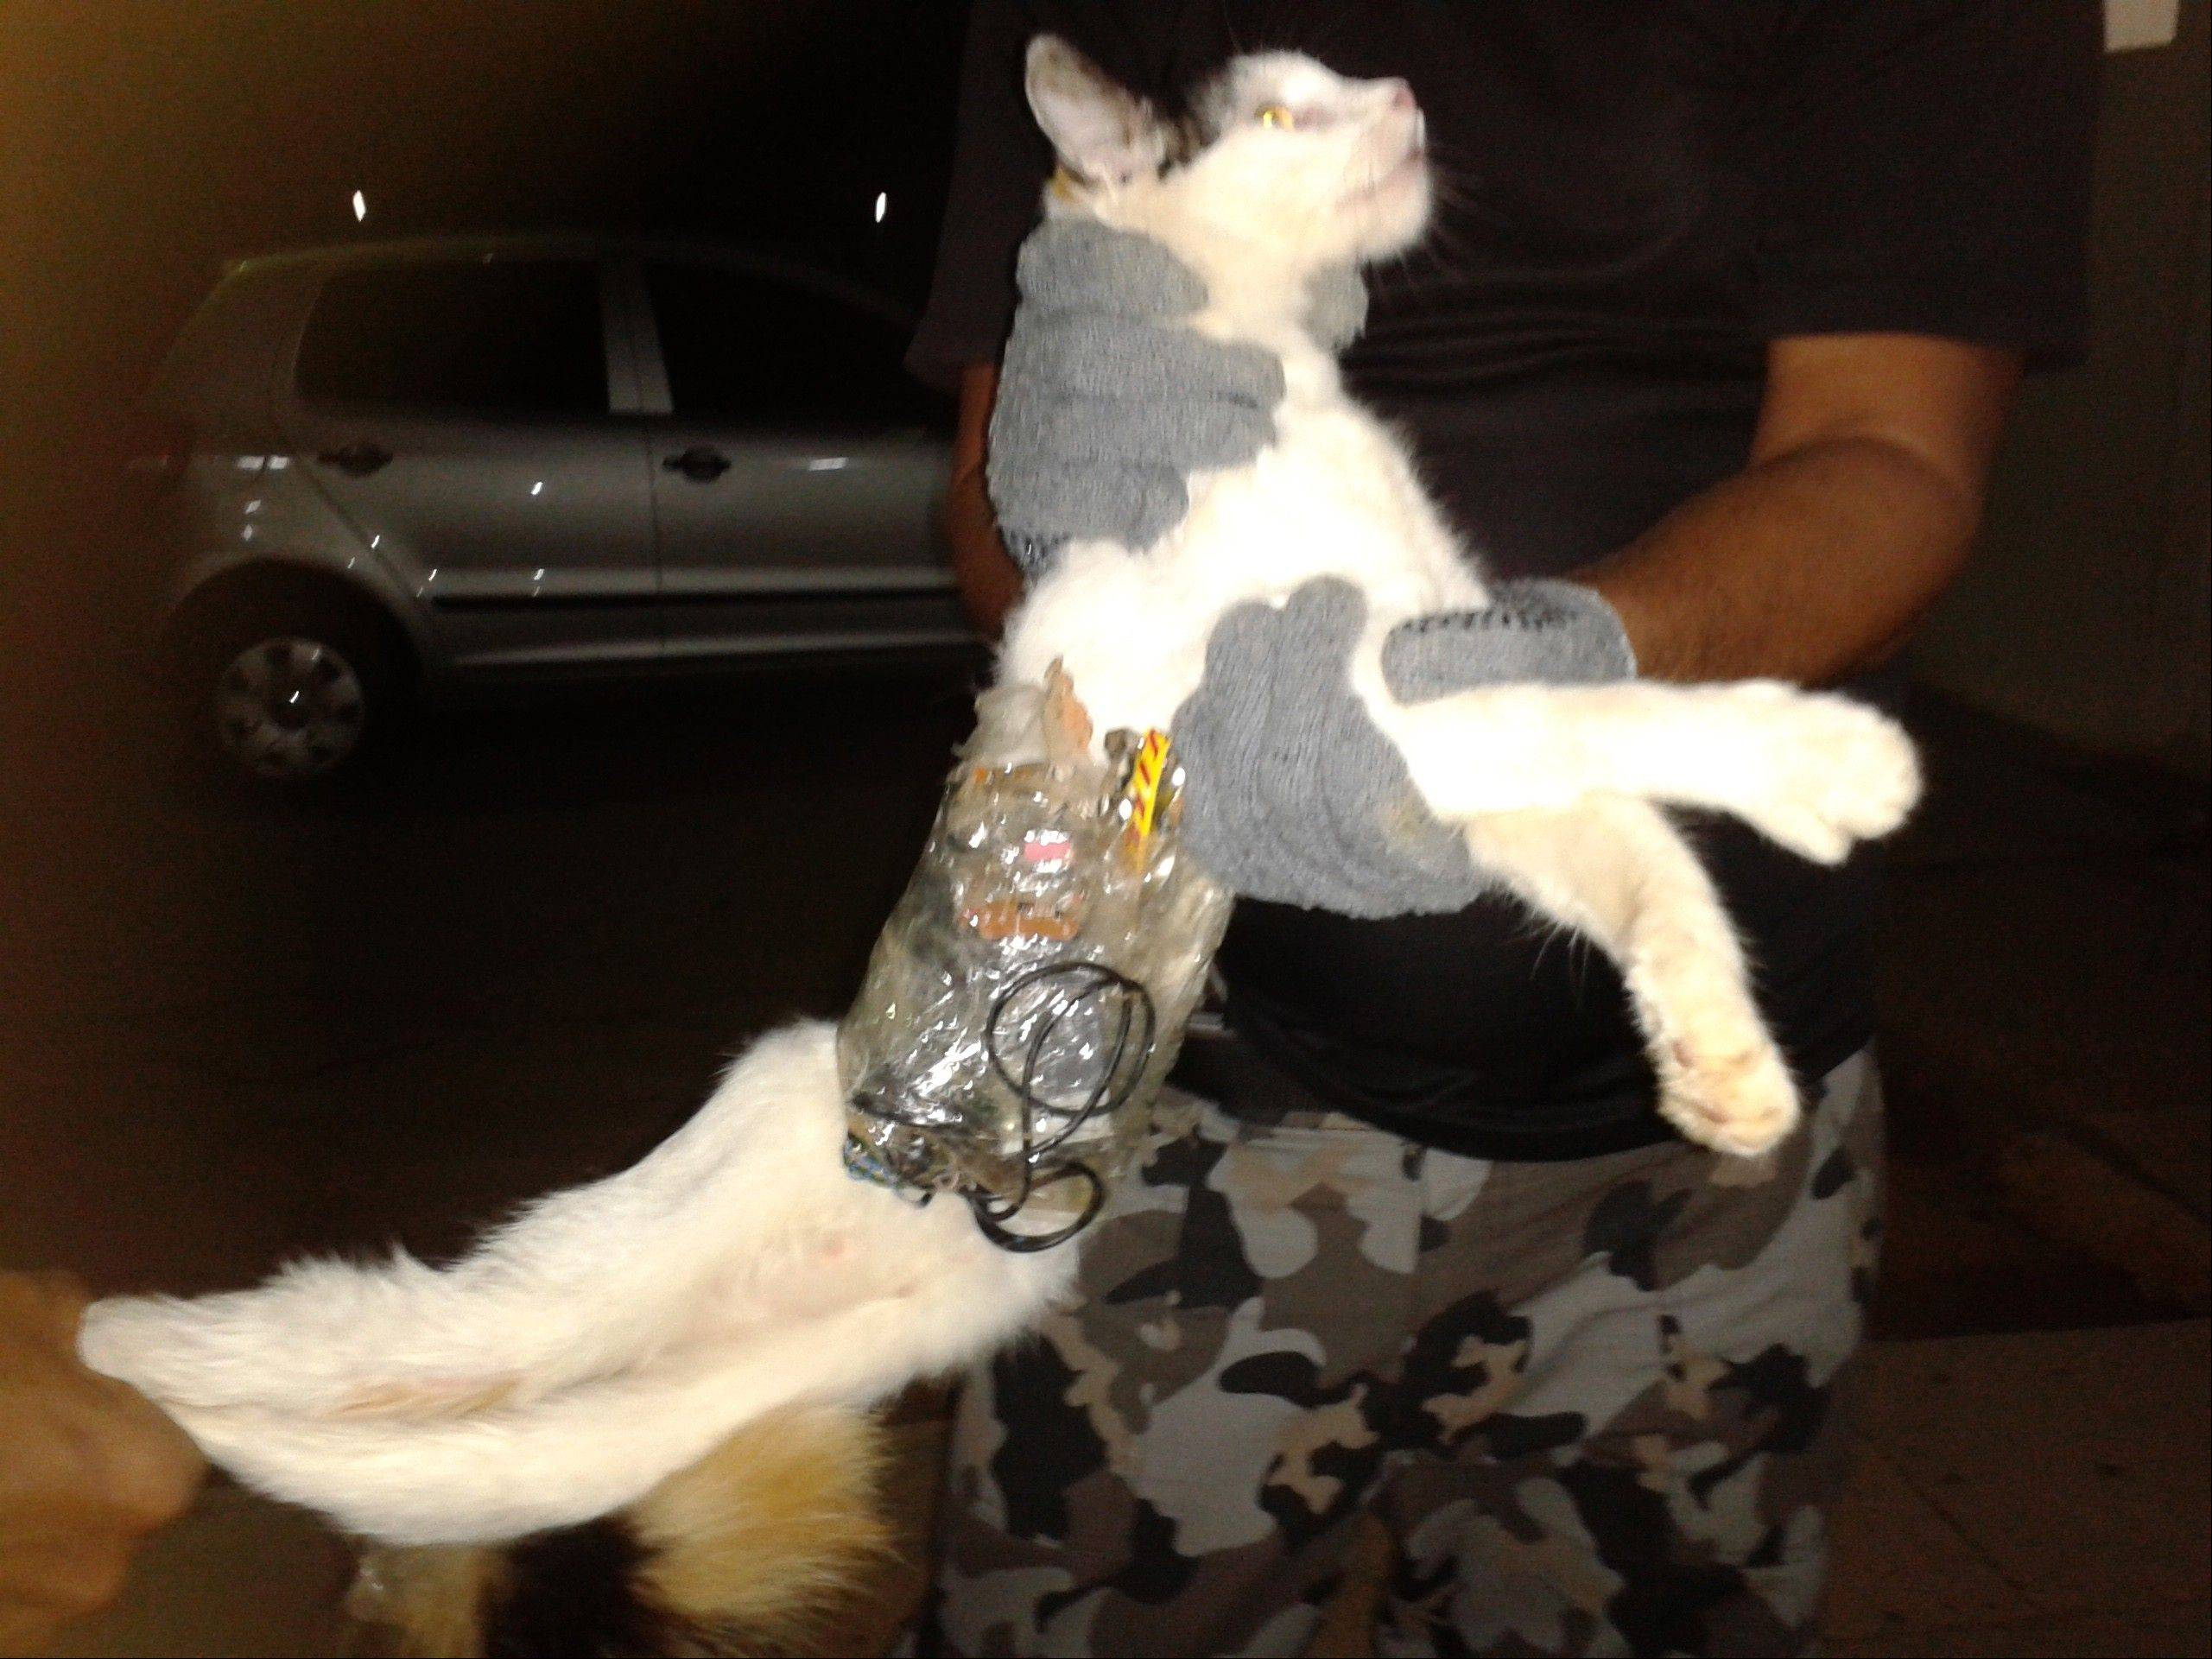 Guards hold a cat that has items taped to its body at a medium-security prison in Arapiraca, in Alagoas state, Brazil. A prison official says they caught the cat slipping through a prison gate with a cell phone, drills, small saws and other contraband taped to its body.